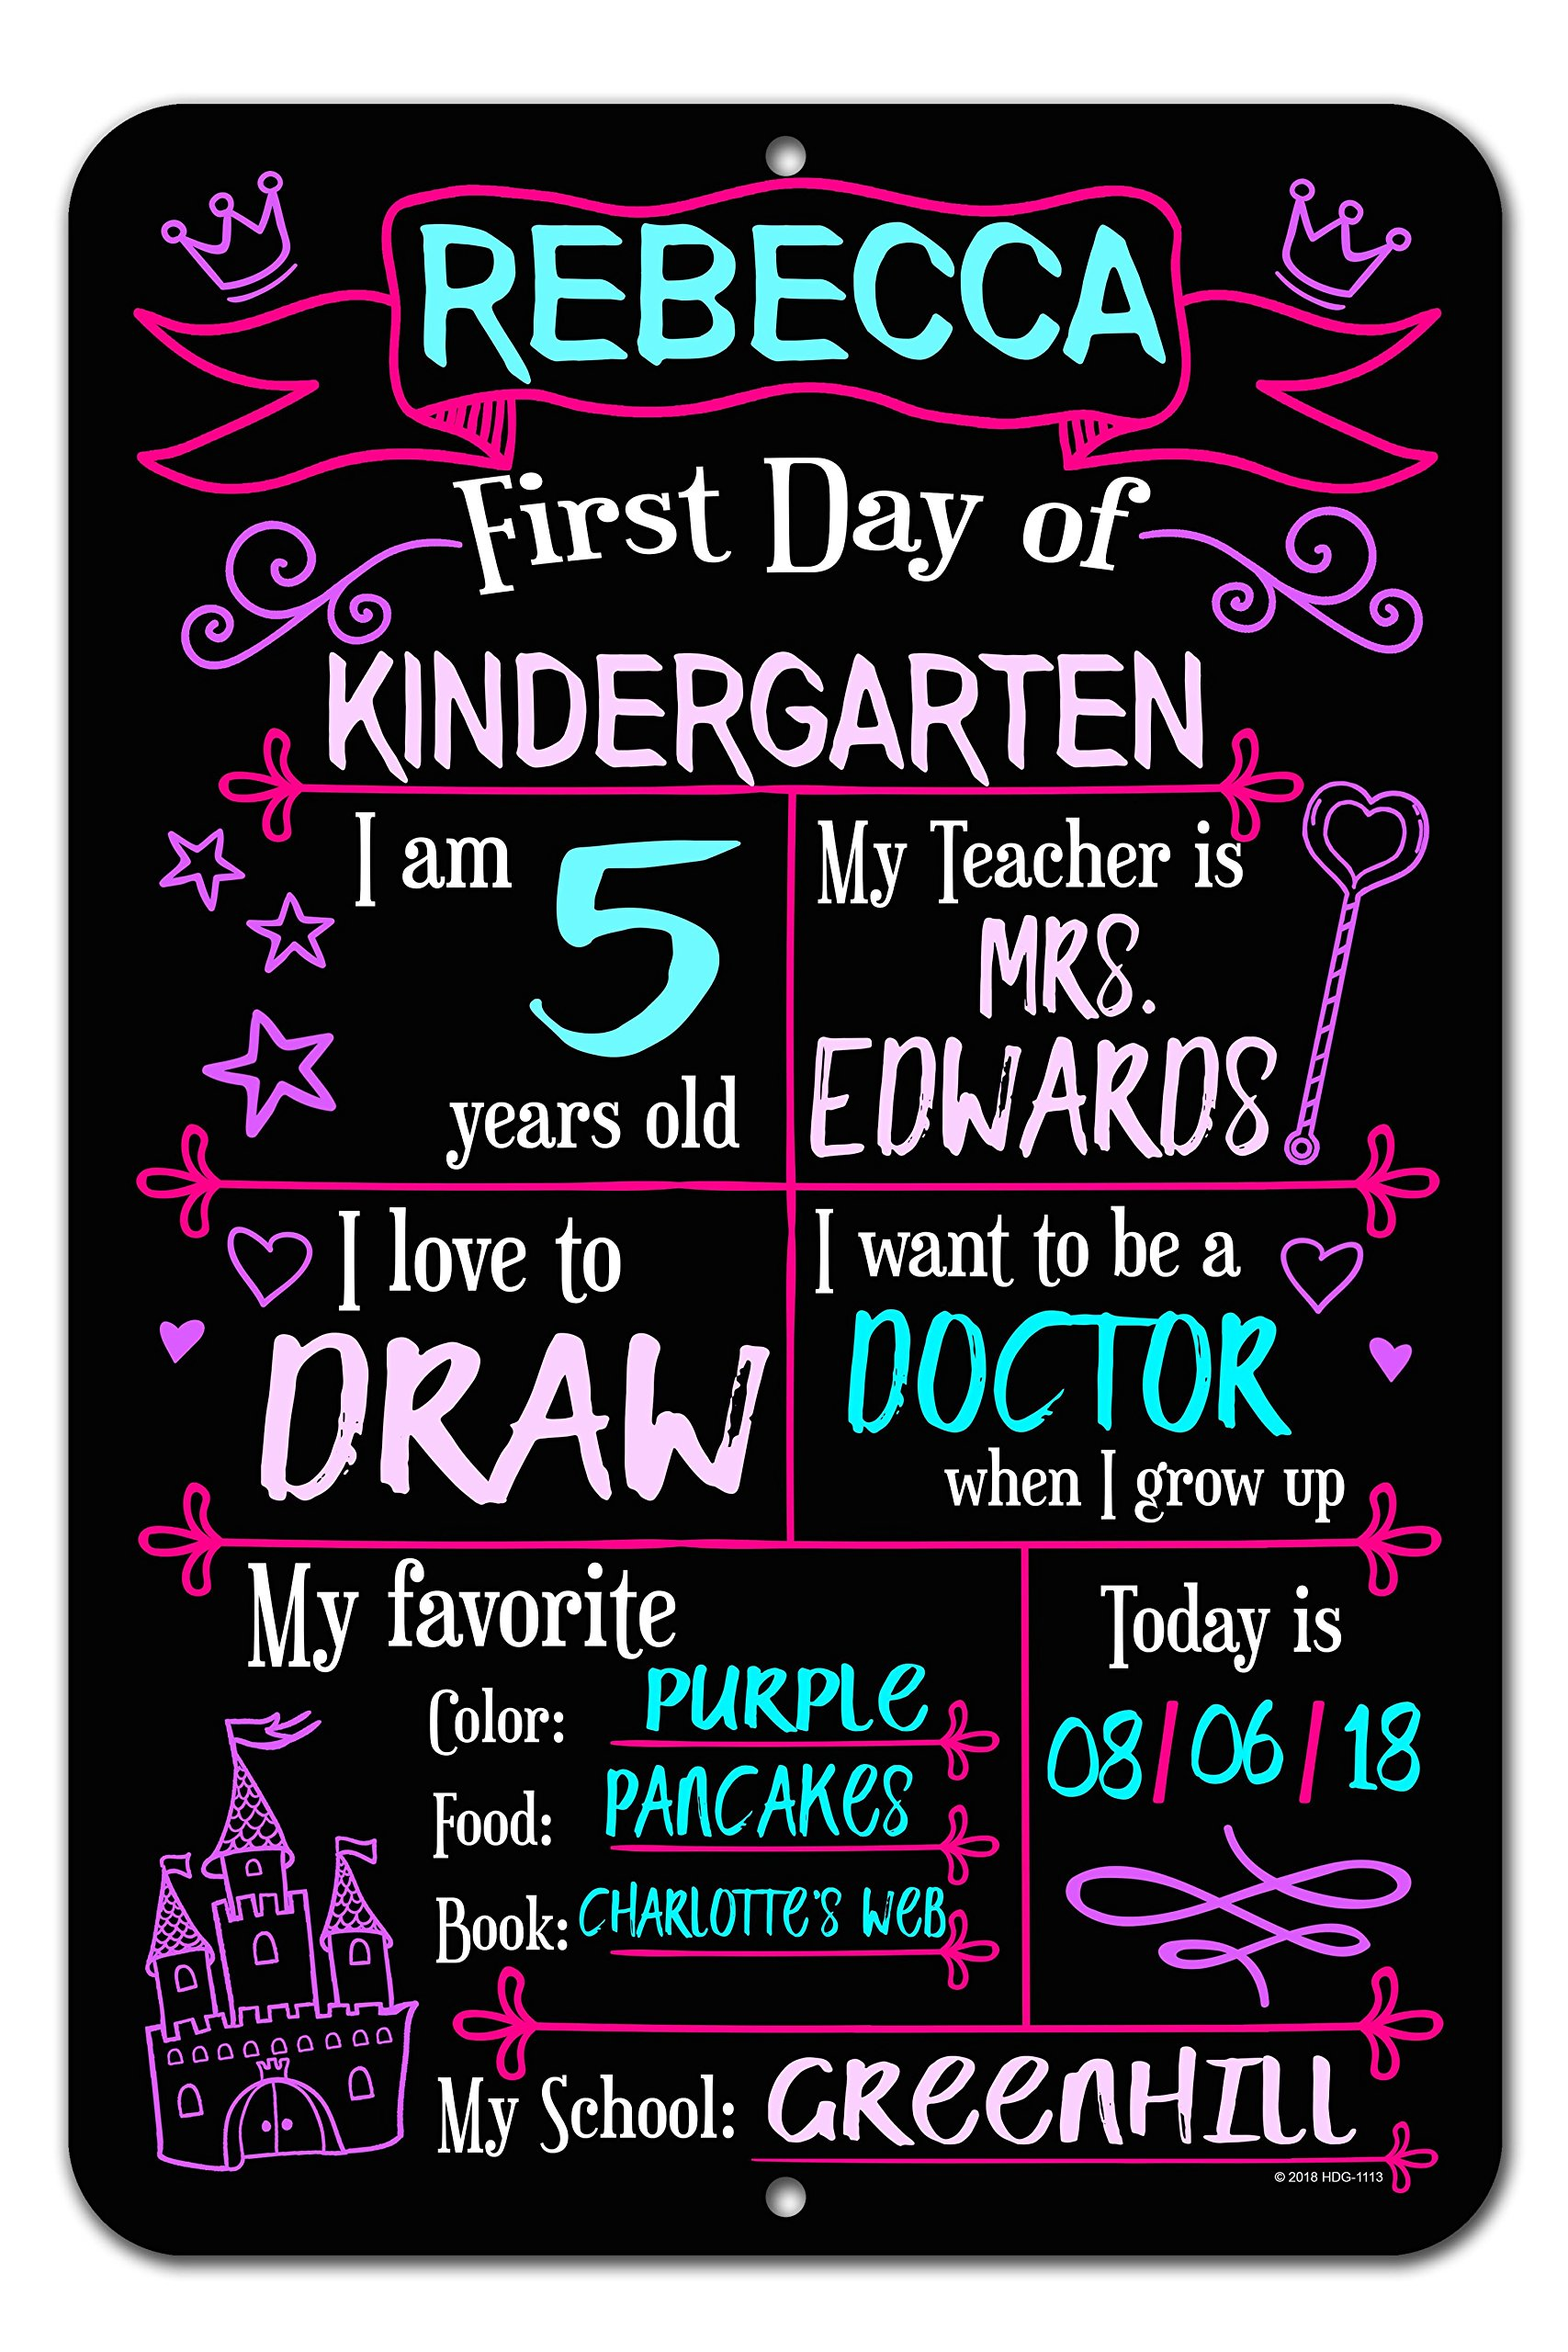 Honey Dew Gifts Large First Day School Princess Chalkboard Style Photo Prop Metal Sign 12 x 18 inch - Reusable Easy Clean Back to School, Customizable Liquid Chalk Markers (Not Included) by Honey Dew Gifts